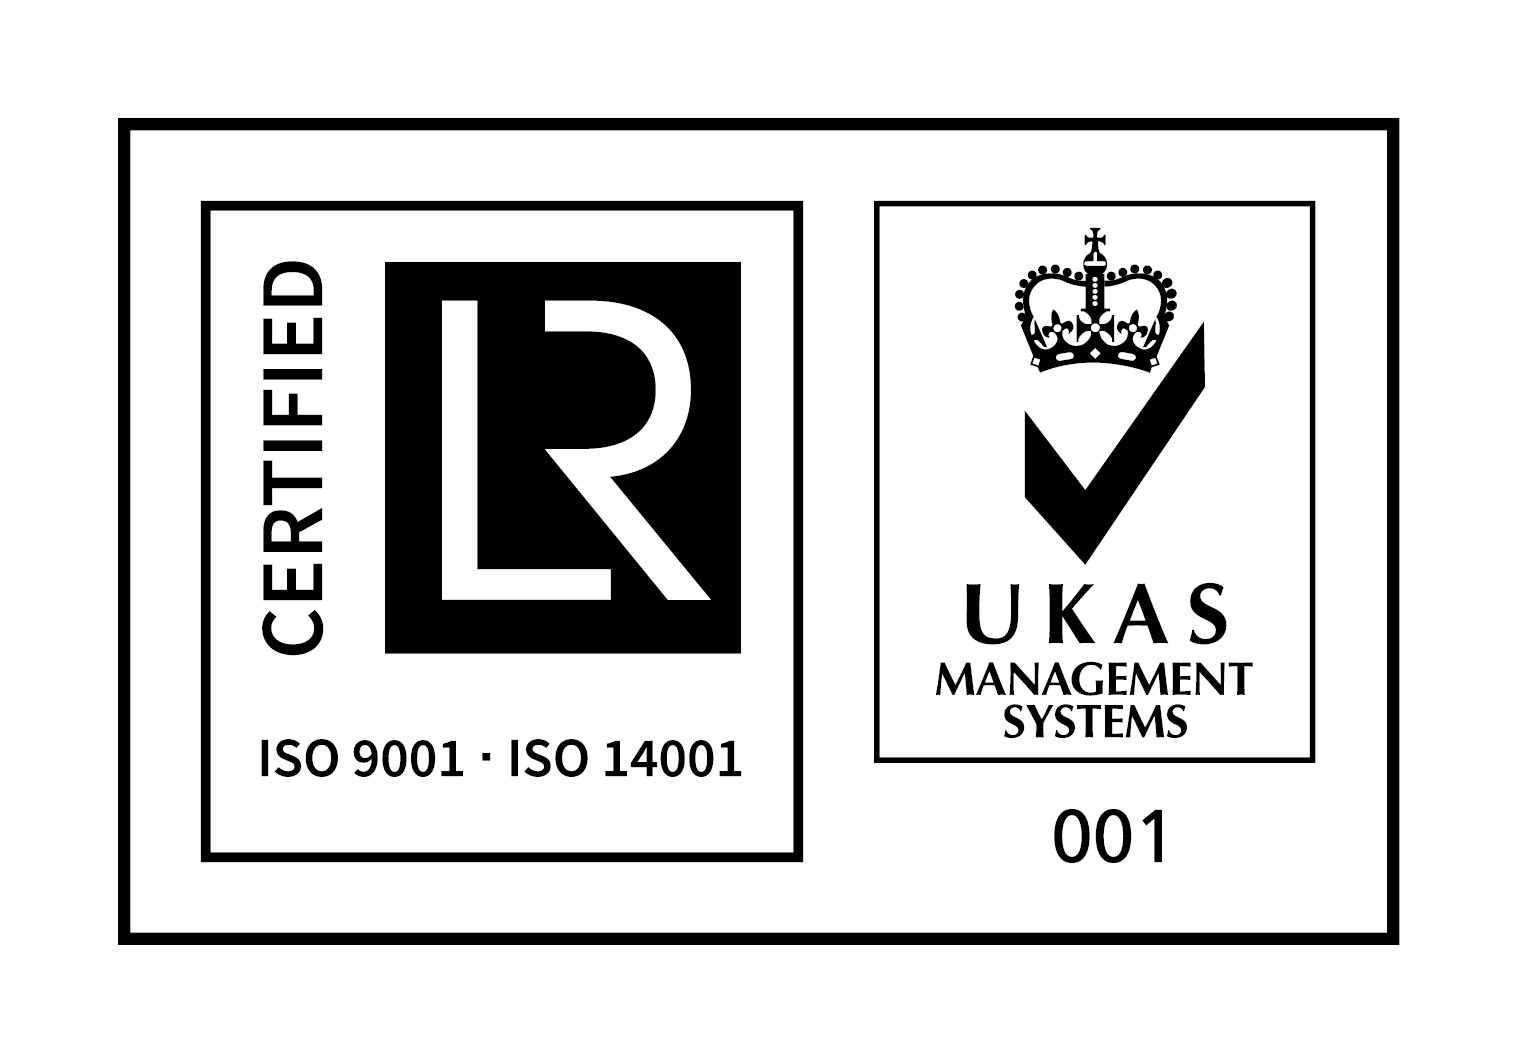 ISO 9001 and 14001